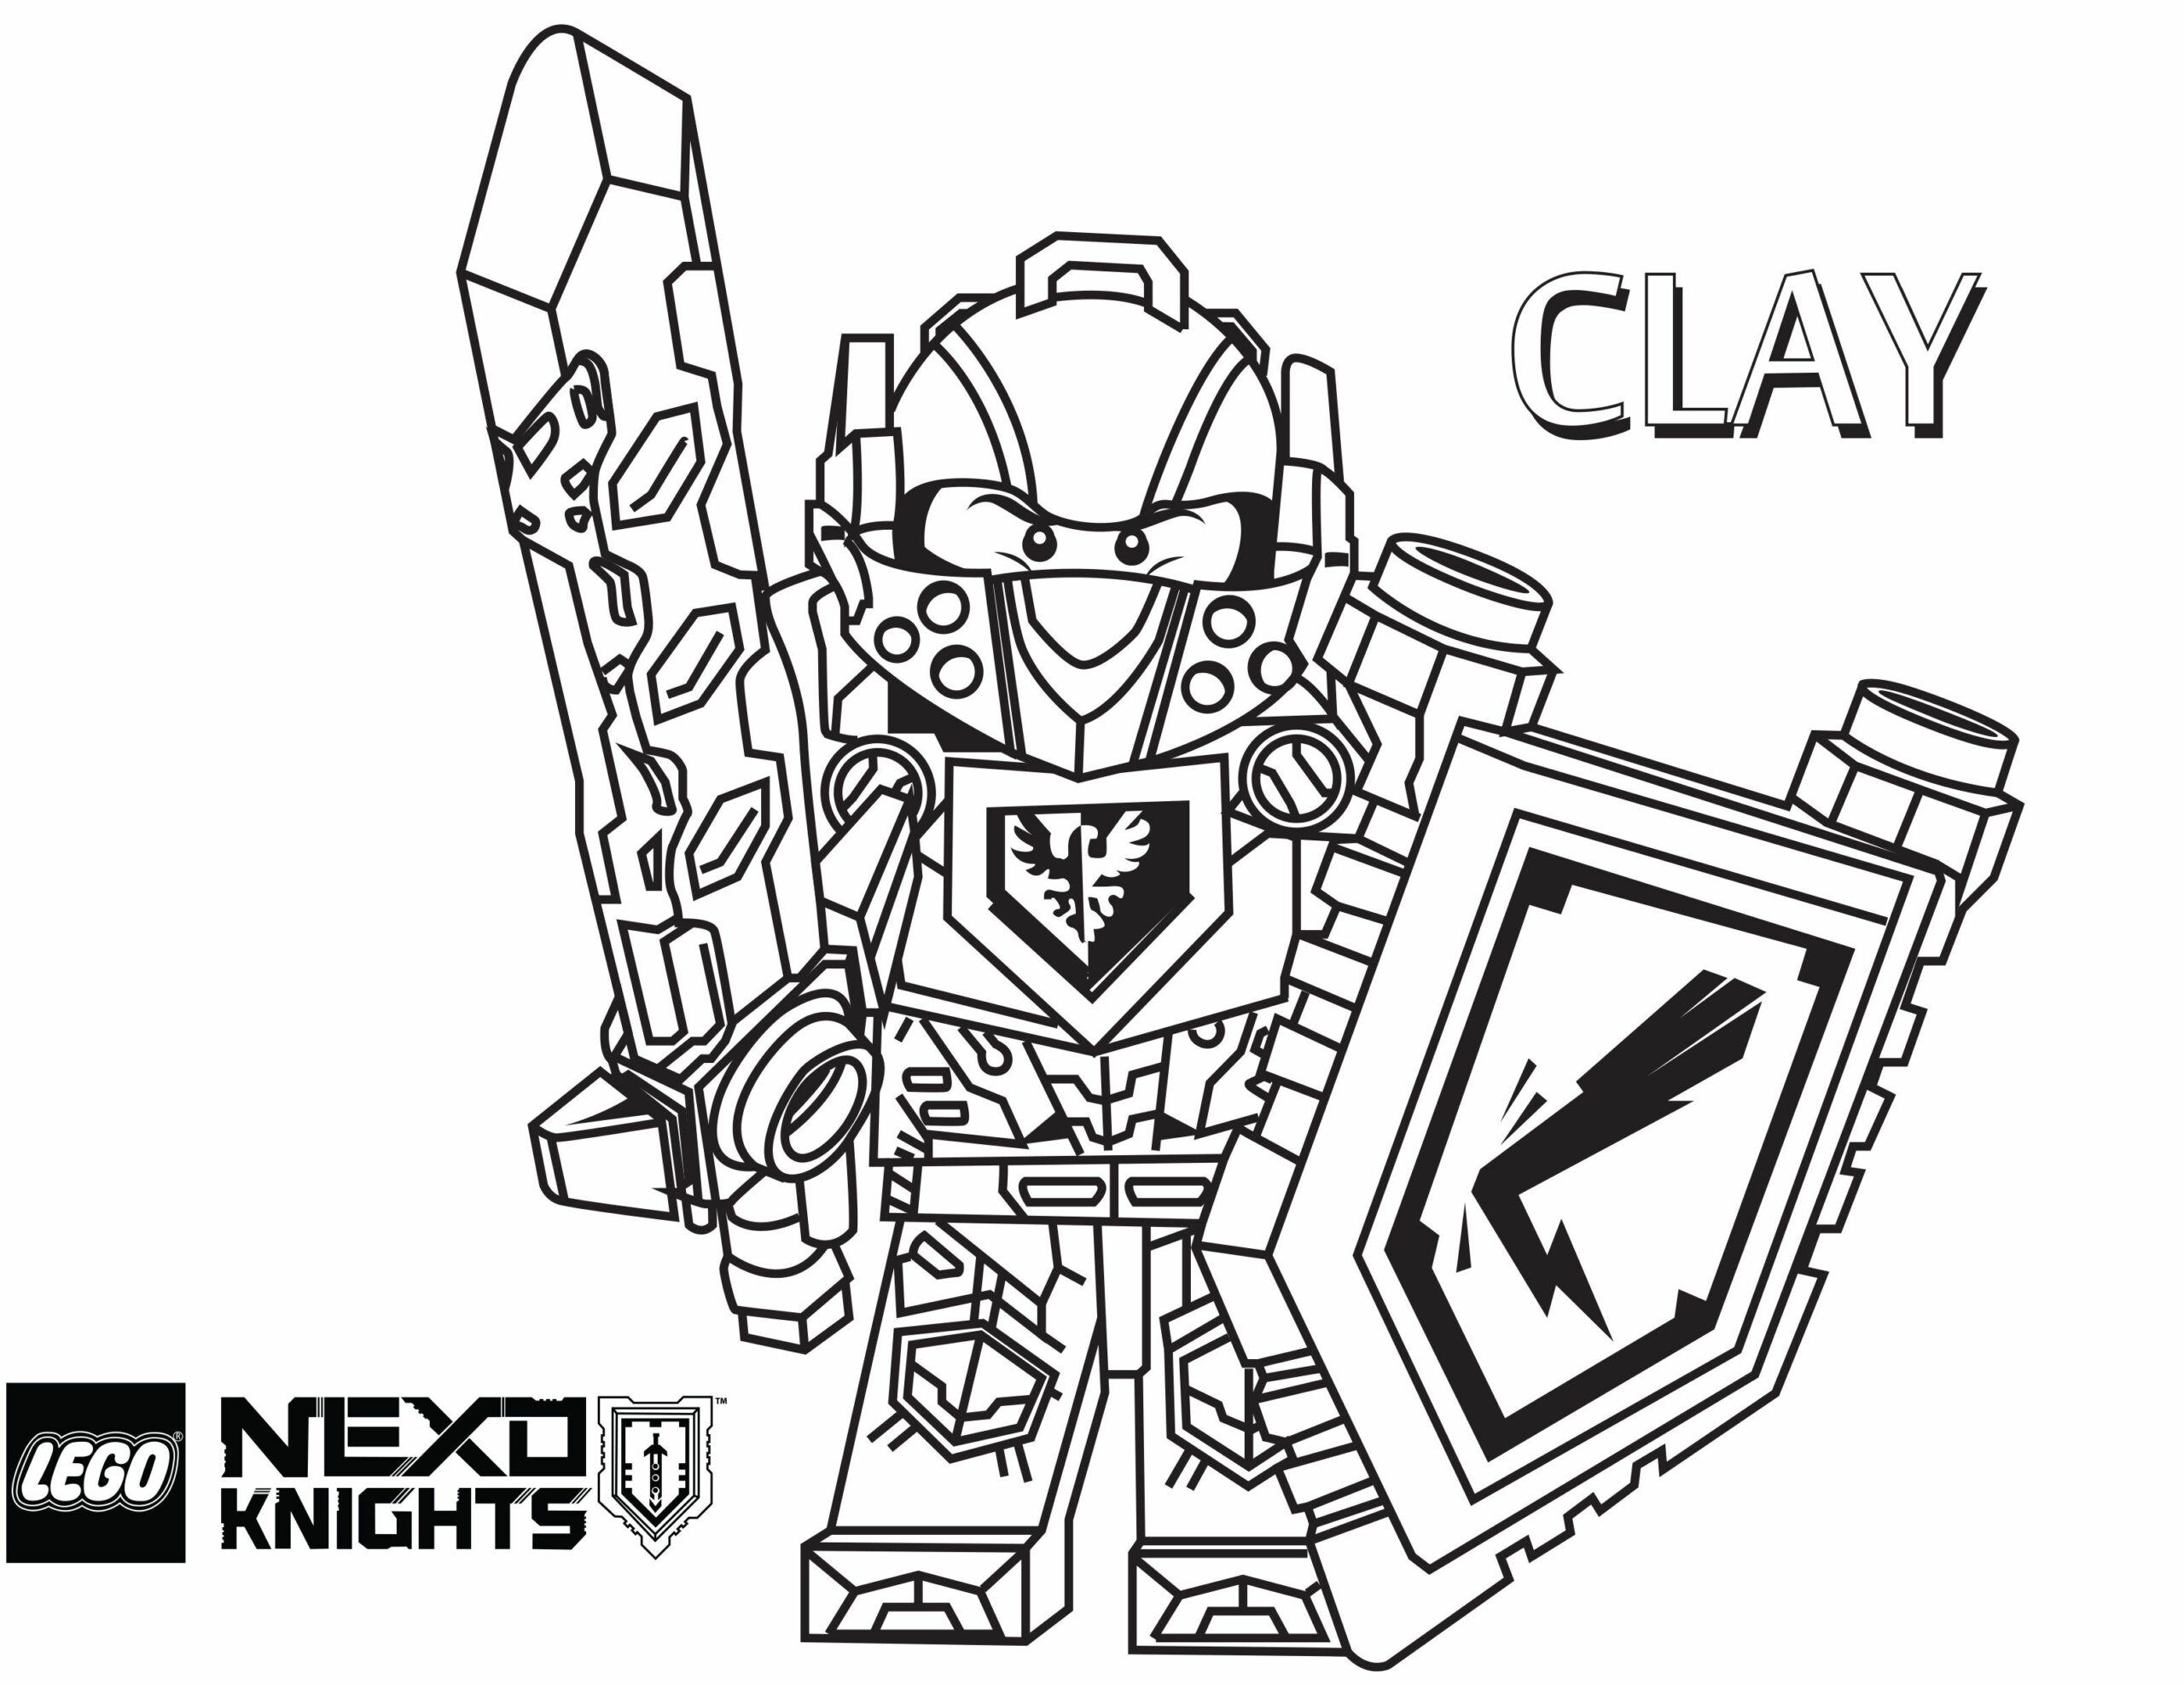 Nexo Knights Coloring Pages Clay